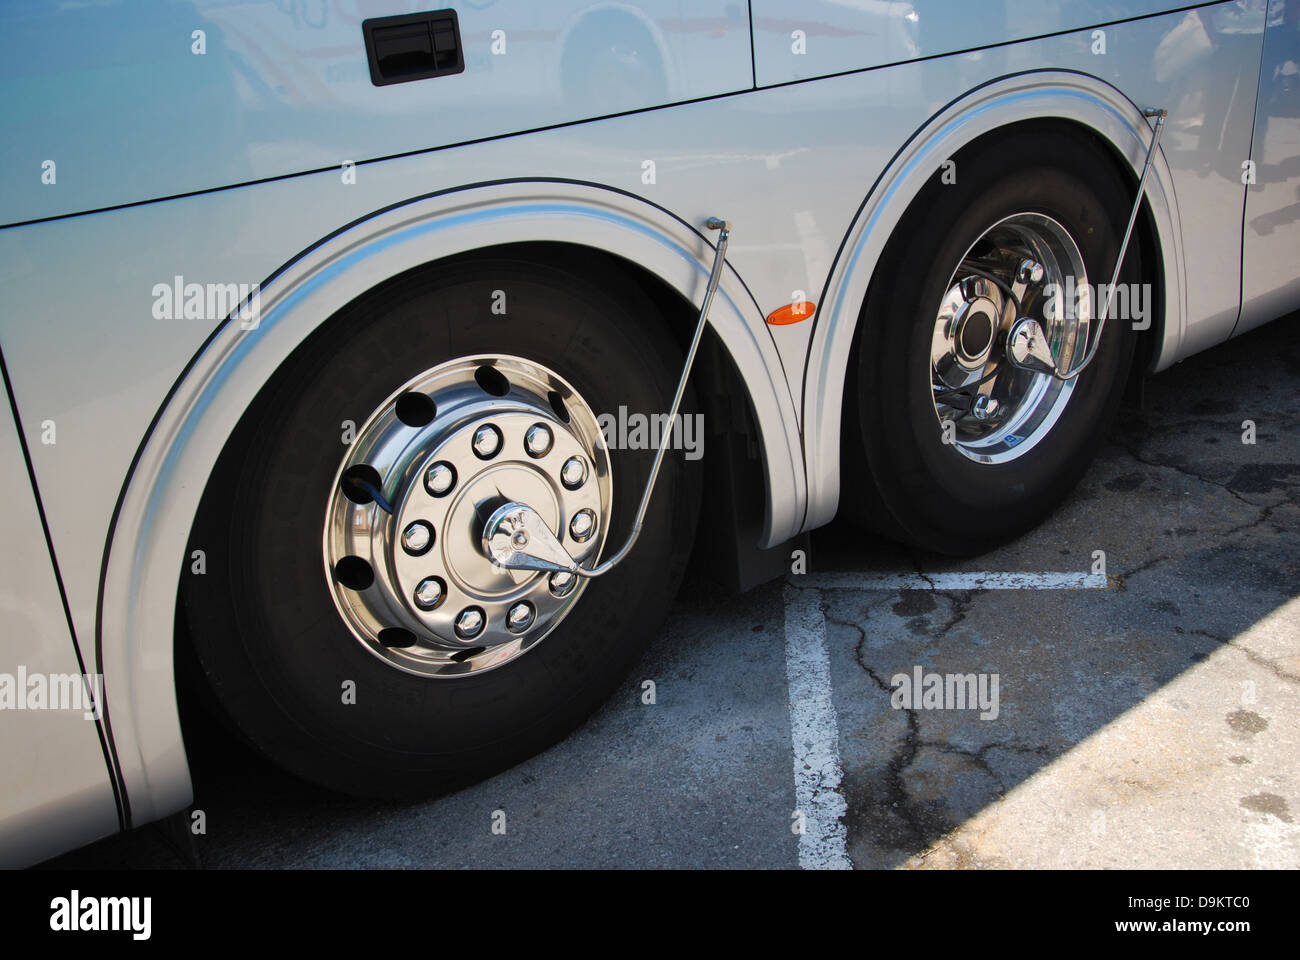 Bus Wheels With Central Tire Inflation System Ctis Stock